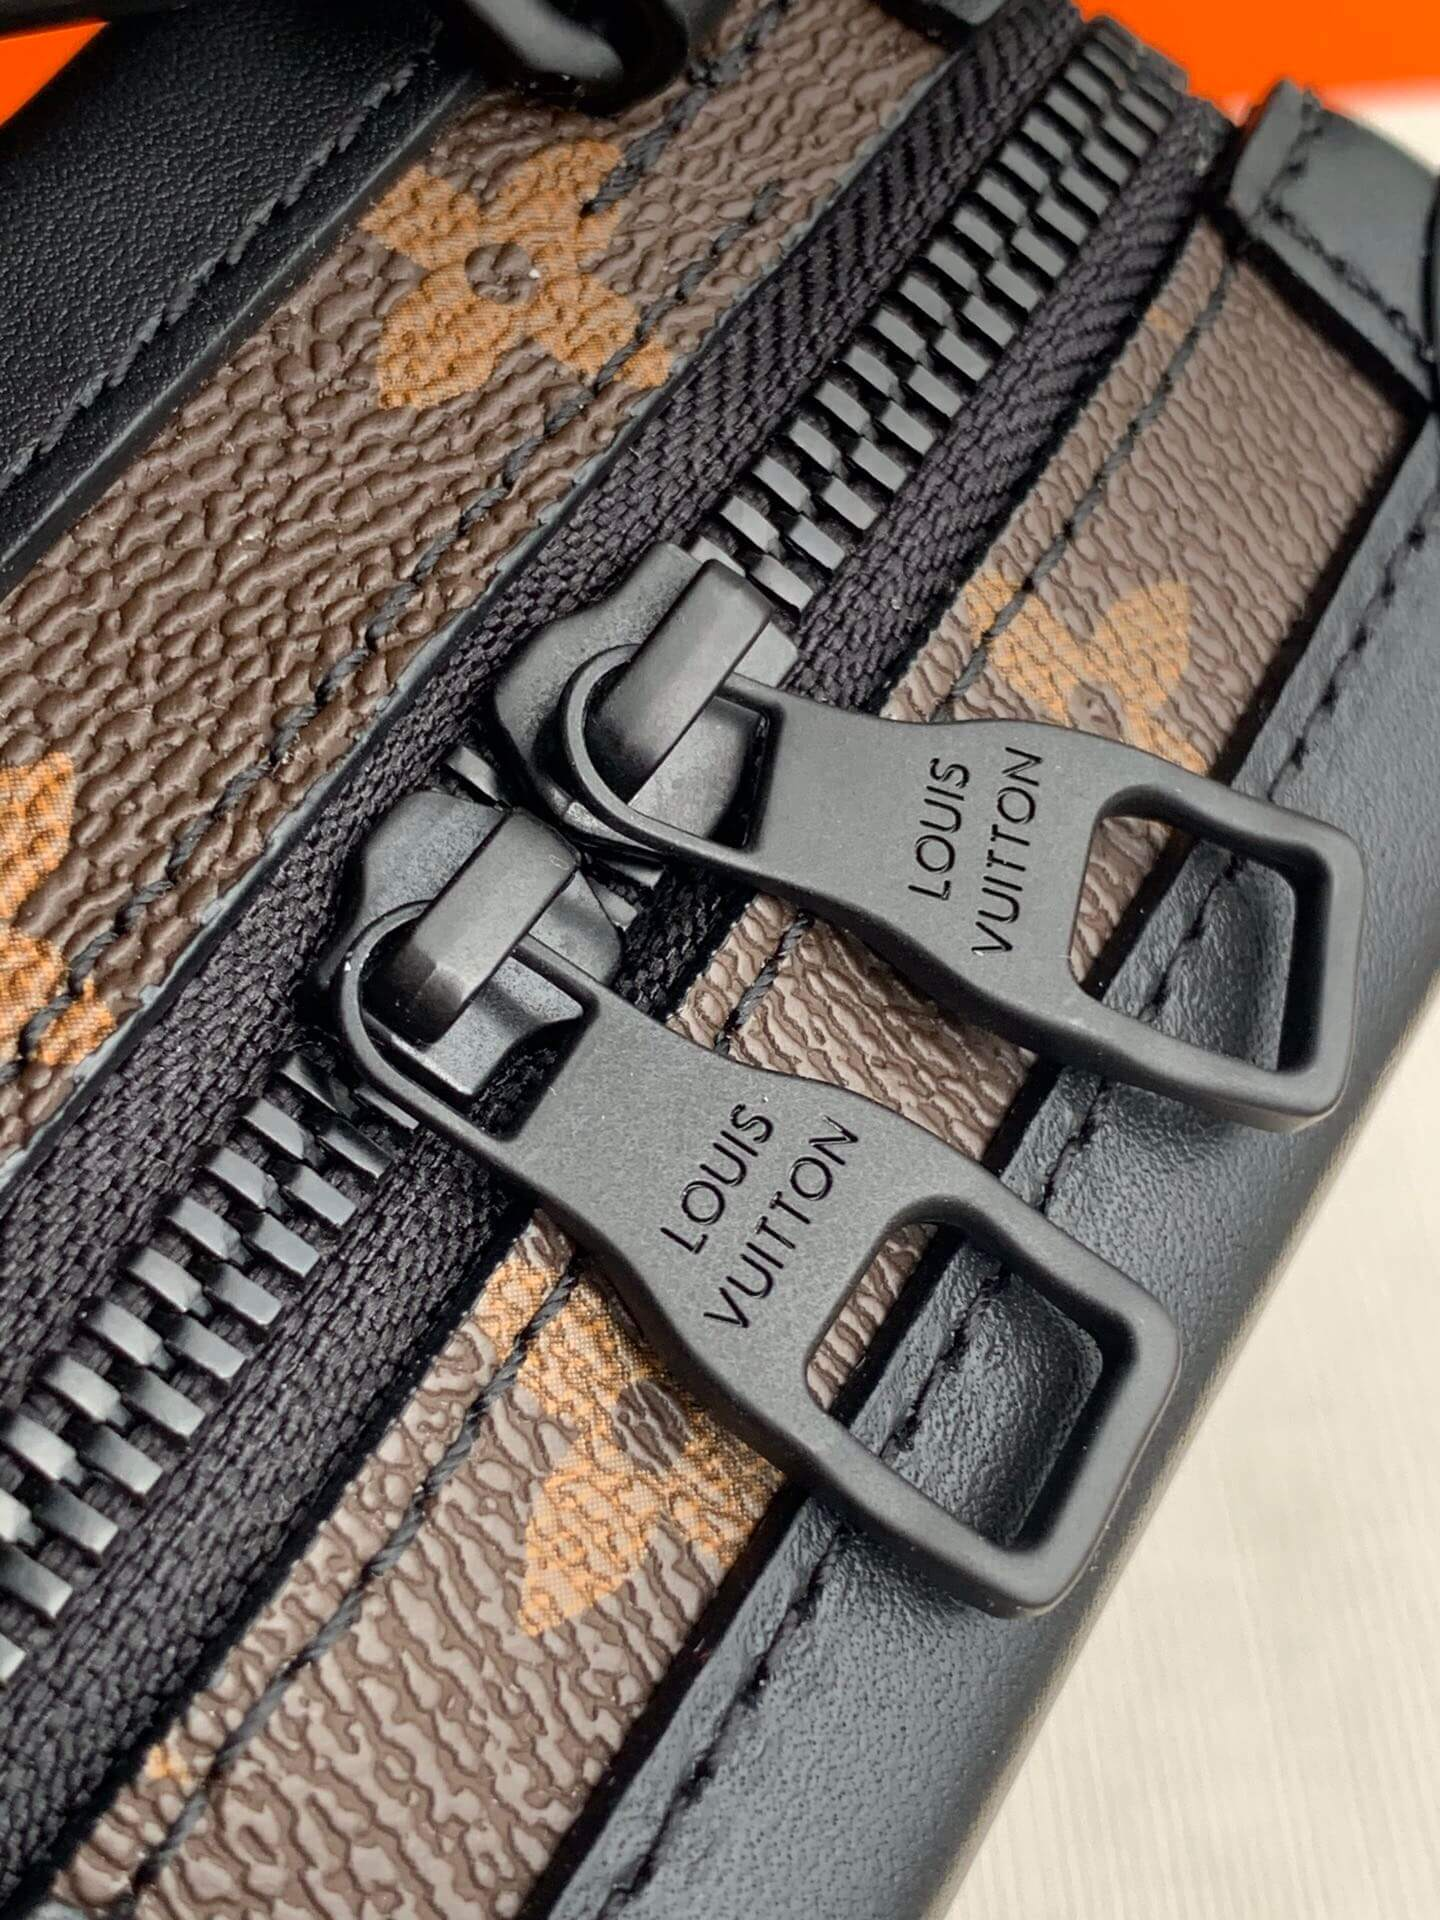 LV M45044 VERTICAL SOFT TRUNK 竖盒子链条斜挎包